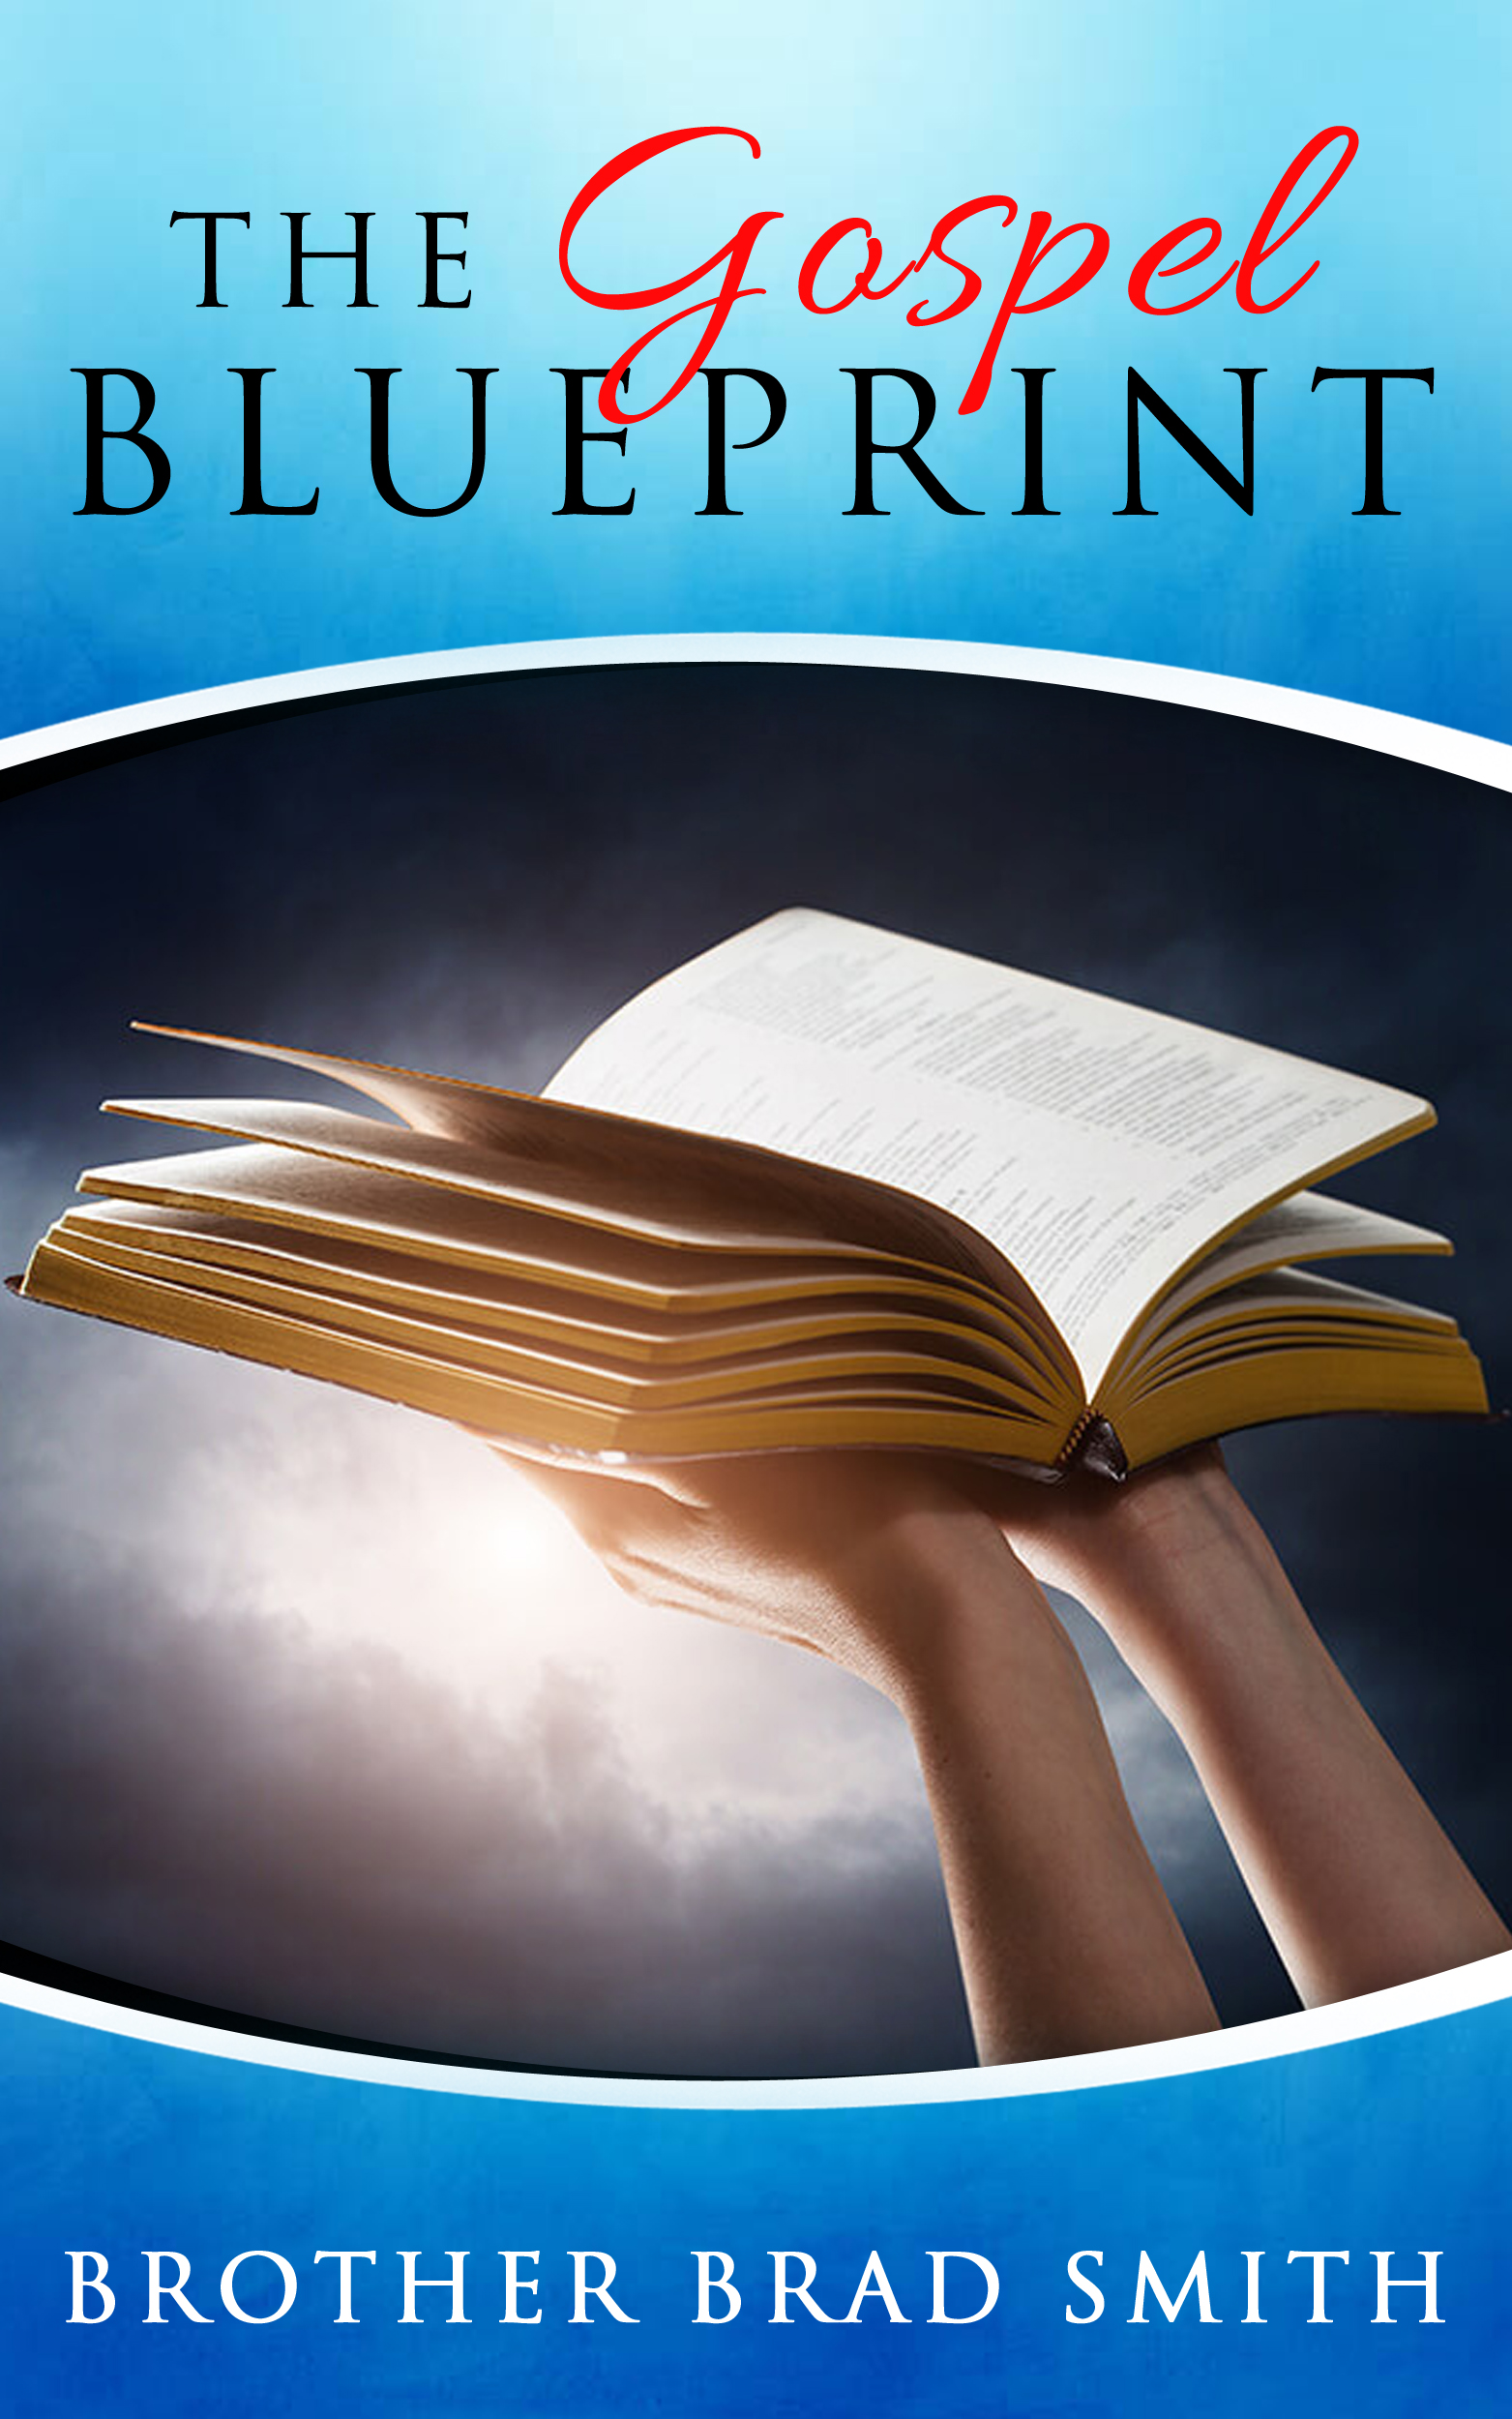 The Gospel Blueprint